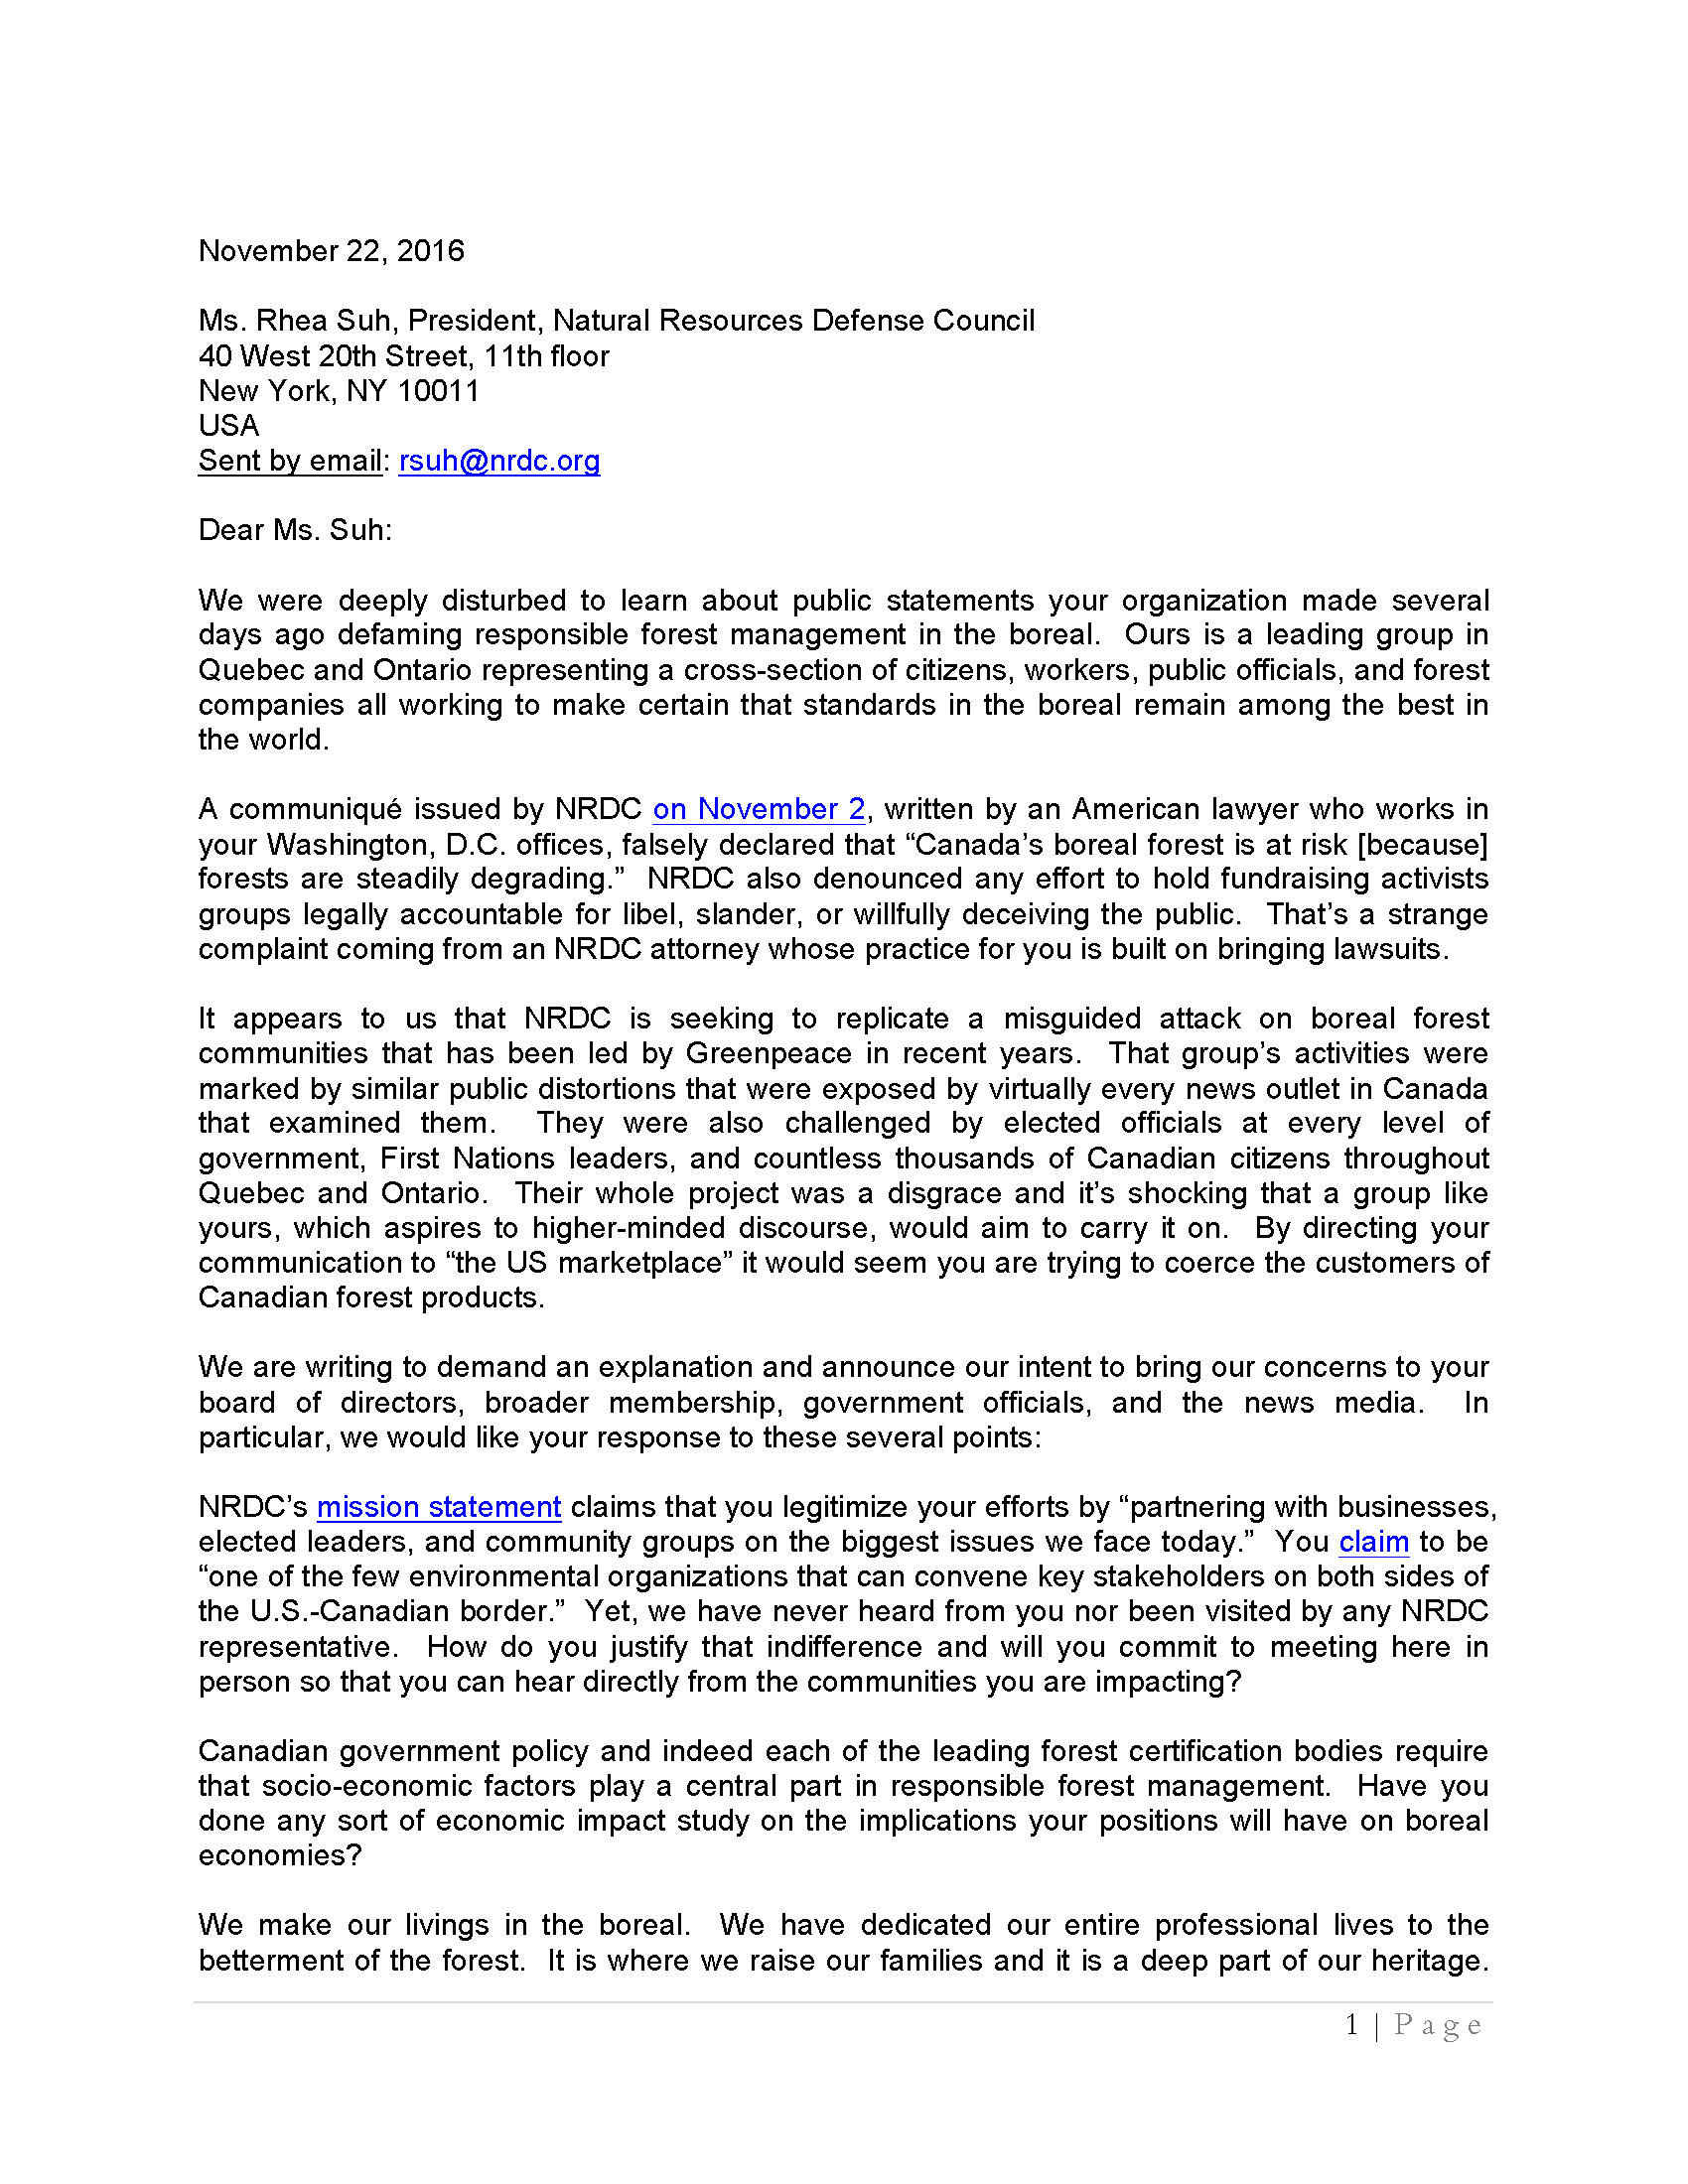 2016 11 22 Letter to NRDC from Boreal Forest Alliance_Page_1.png